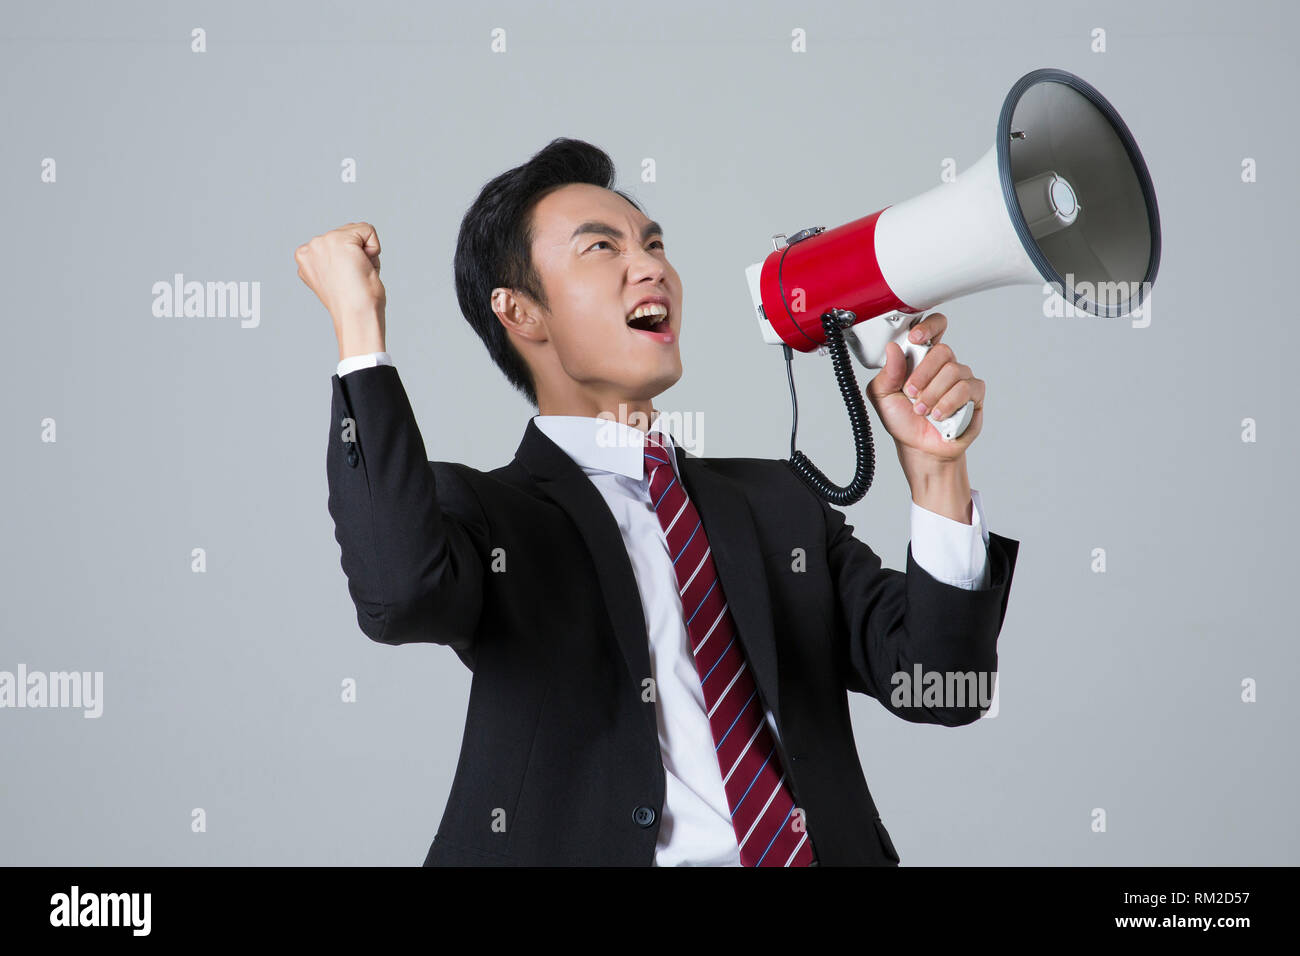 Young businessman concept photo. 111 - Stock Image